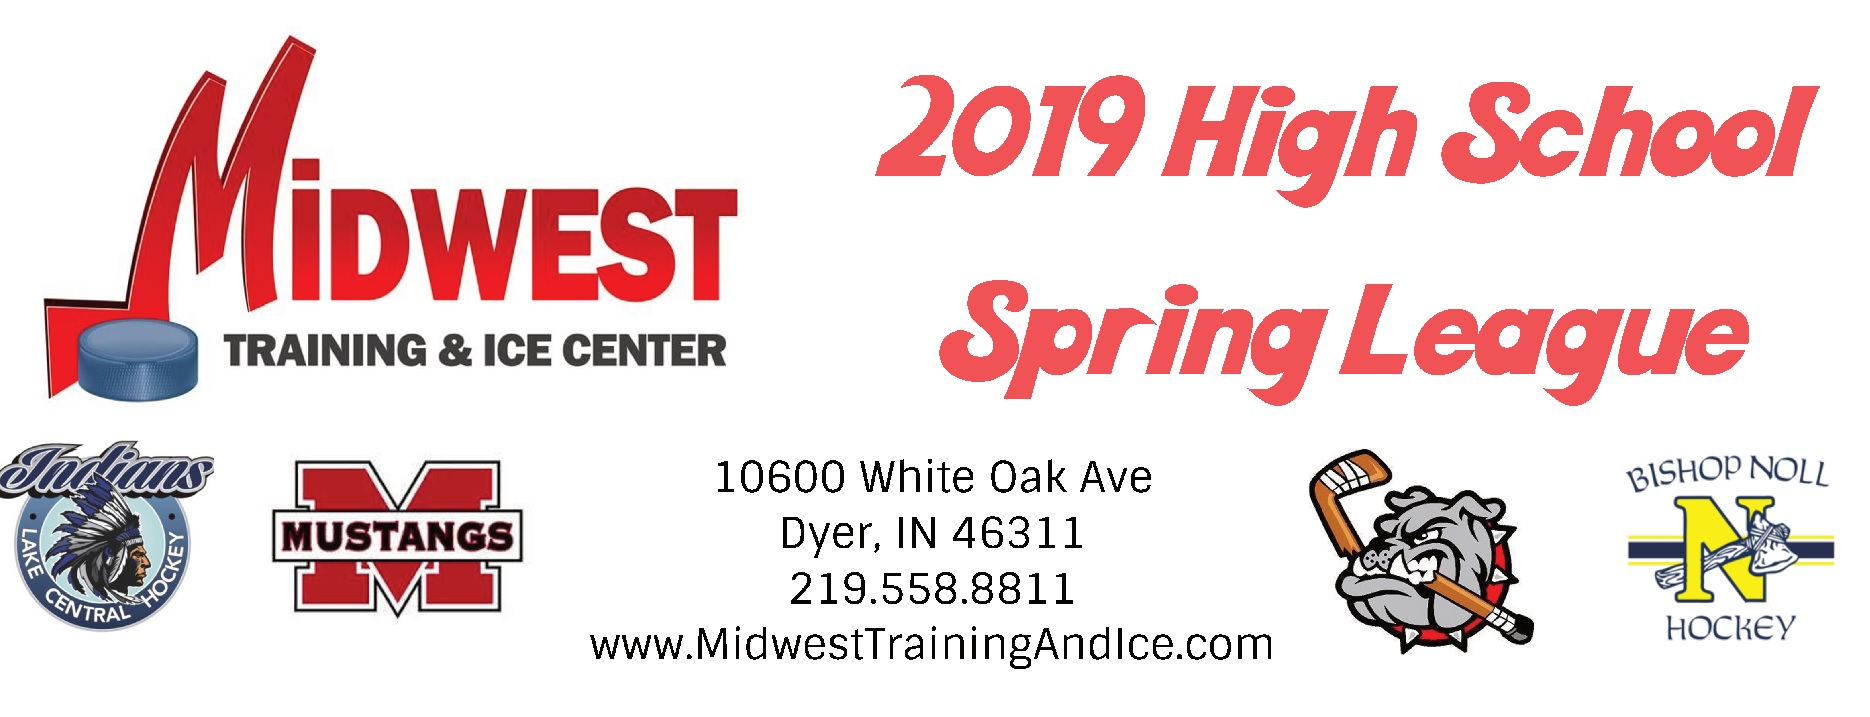 High School Hockey | Midwest Training and Ice Center